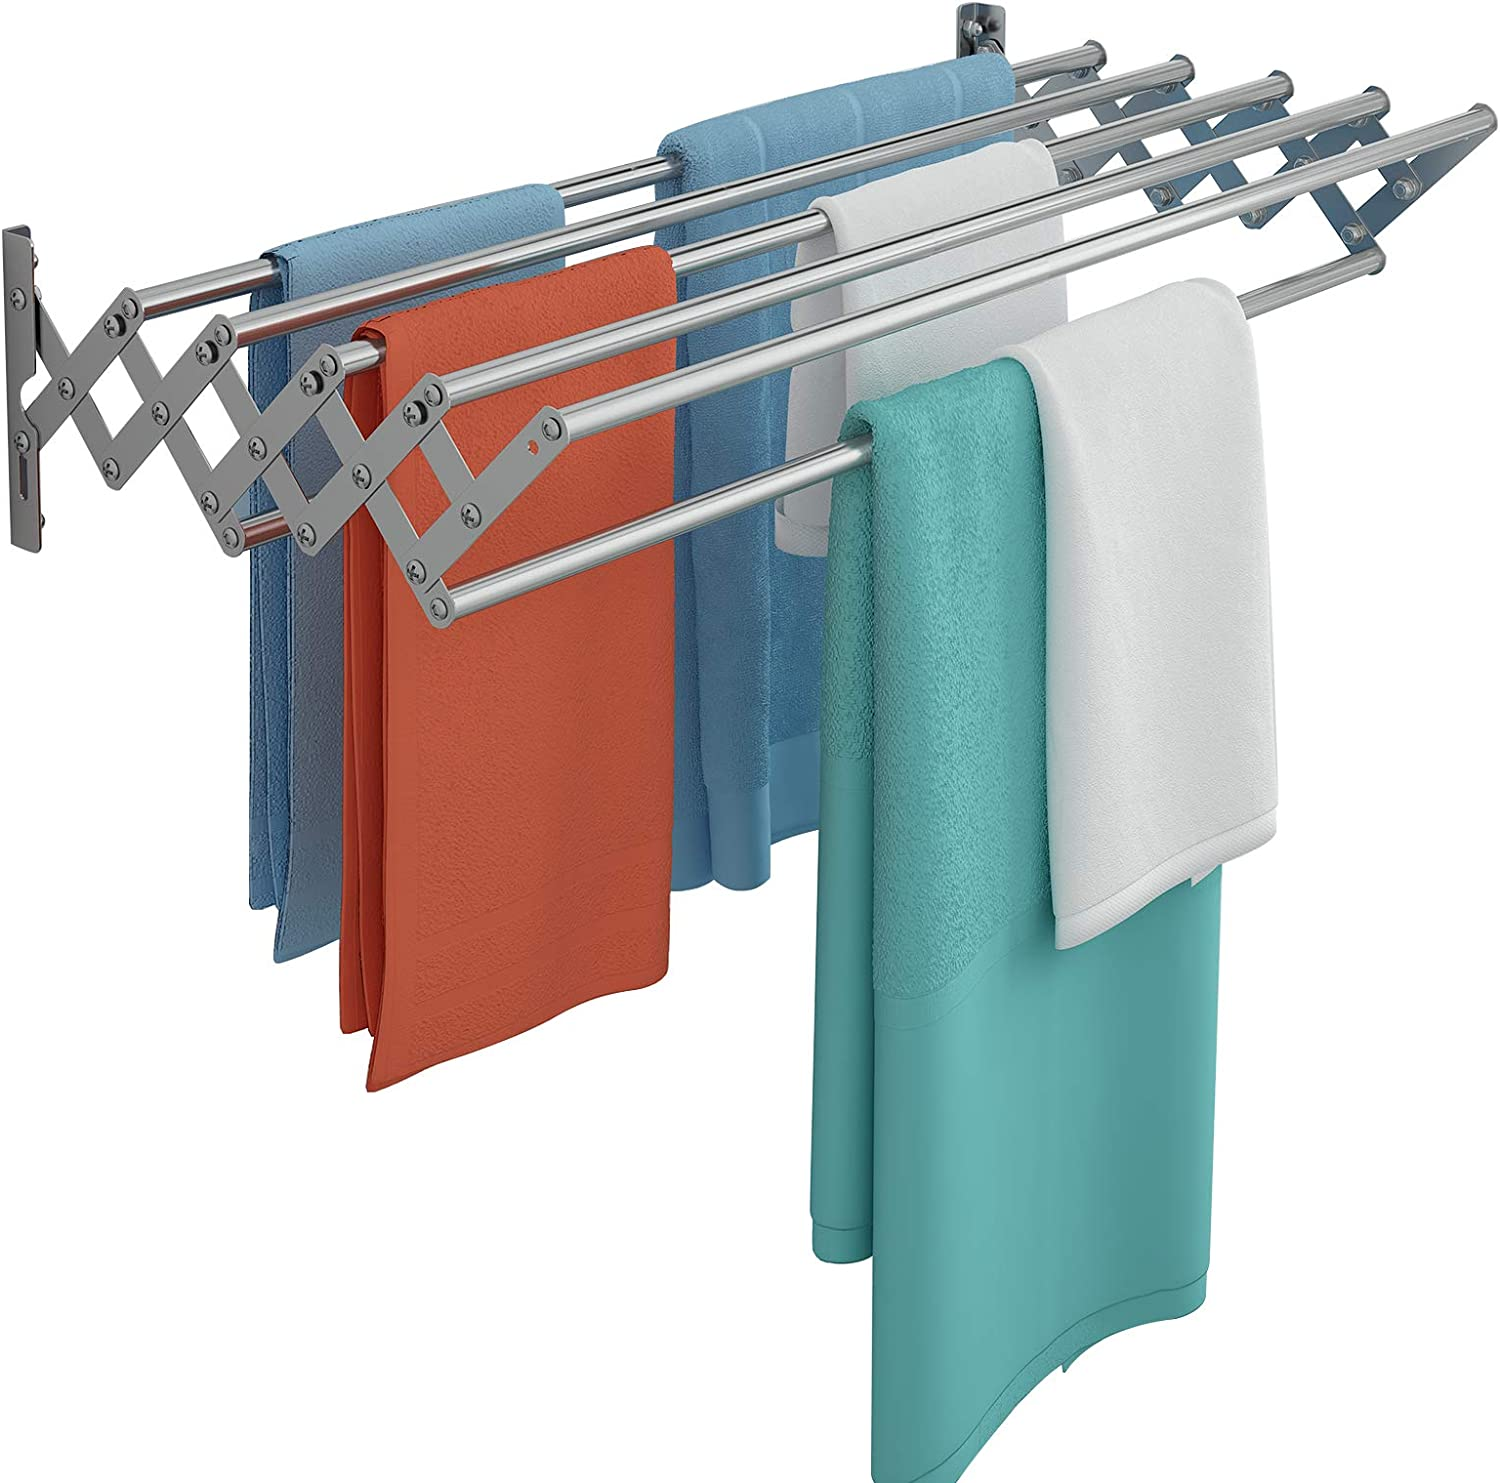 Indianapolis Mall Qurutma Max 42% OFF Wall Mounted Clothes Drying Rack Accordi Steel Stainless